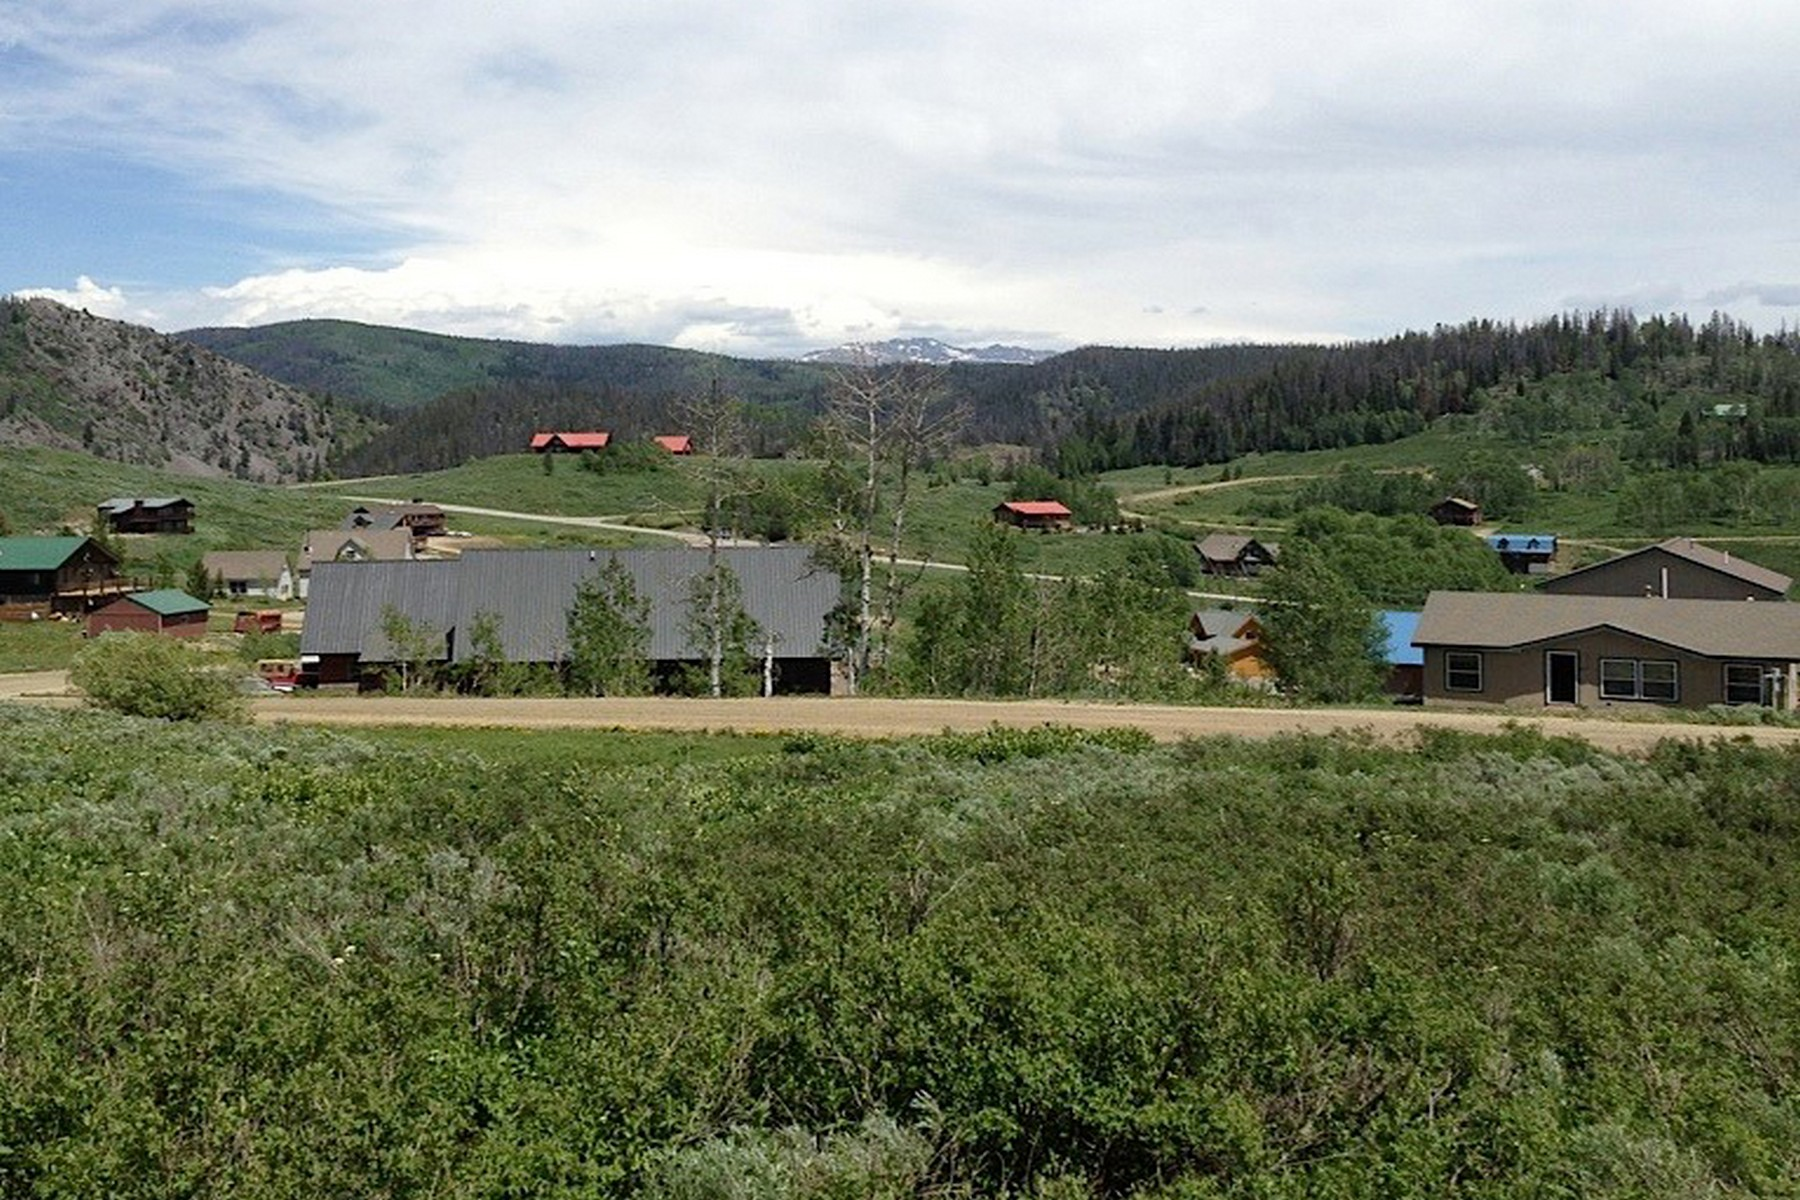 Additional photo for property listing at Willow Creek Pass Village 57570 Longfellow Way Clark, Colorado 80428 United States